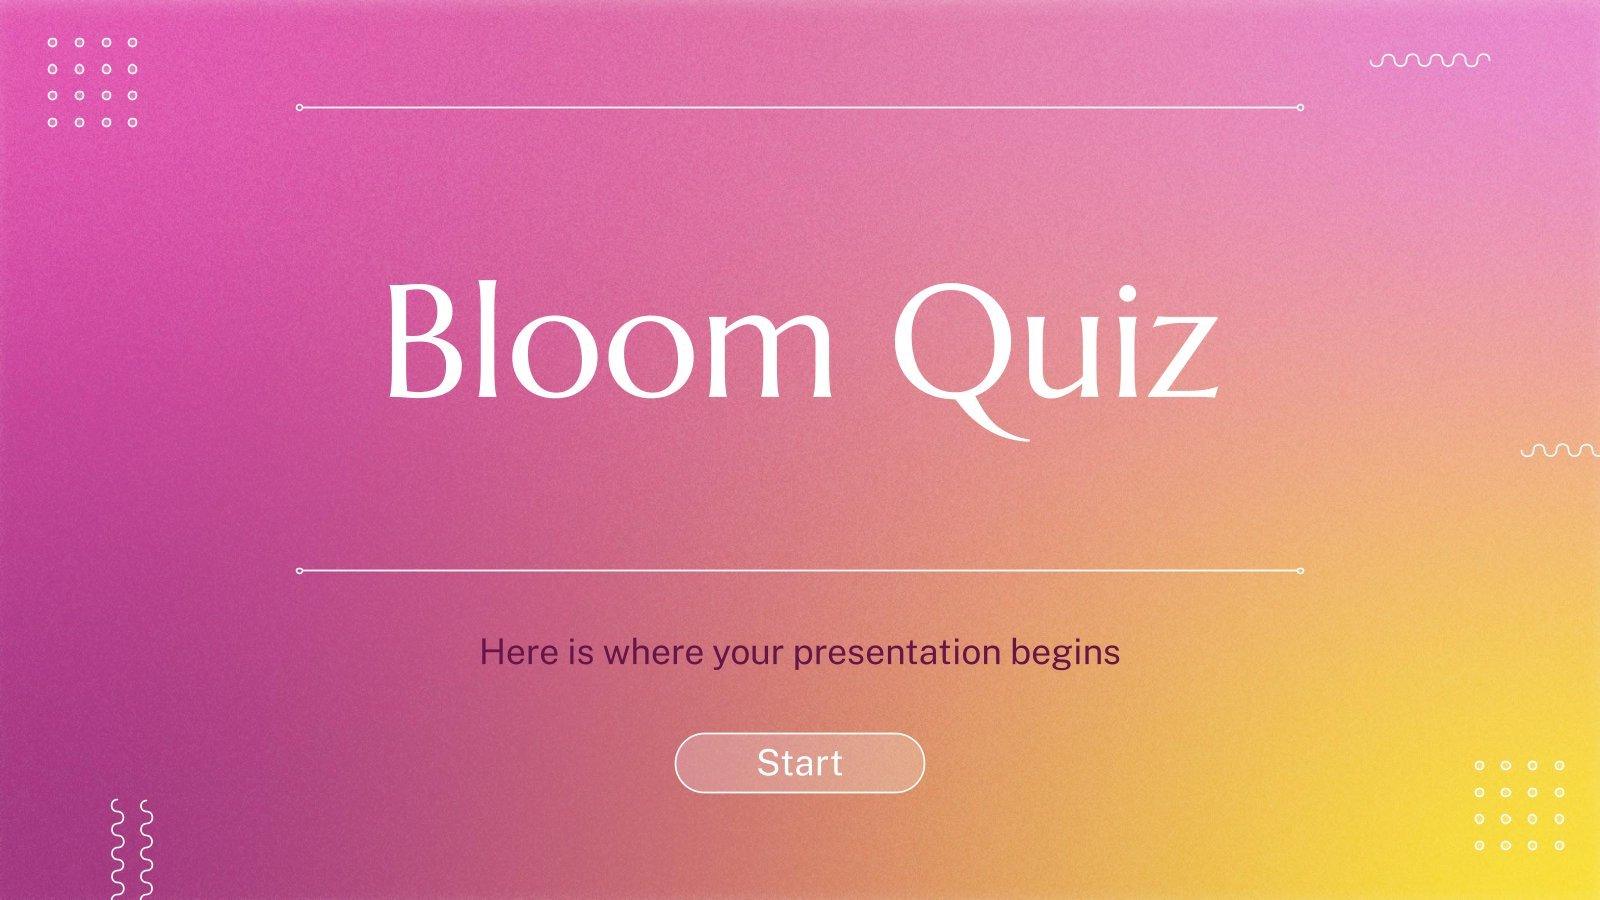 Bloom-Quiz Präsentationsvorlage